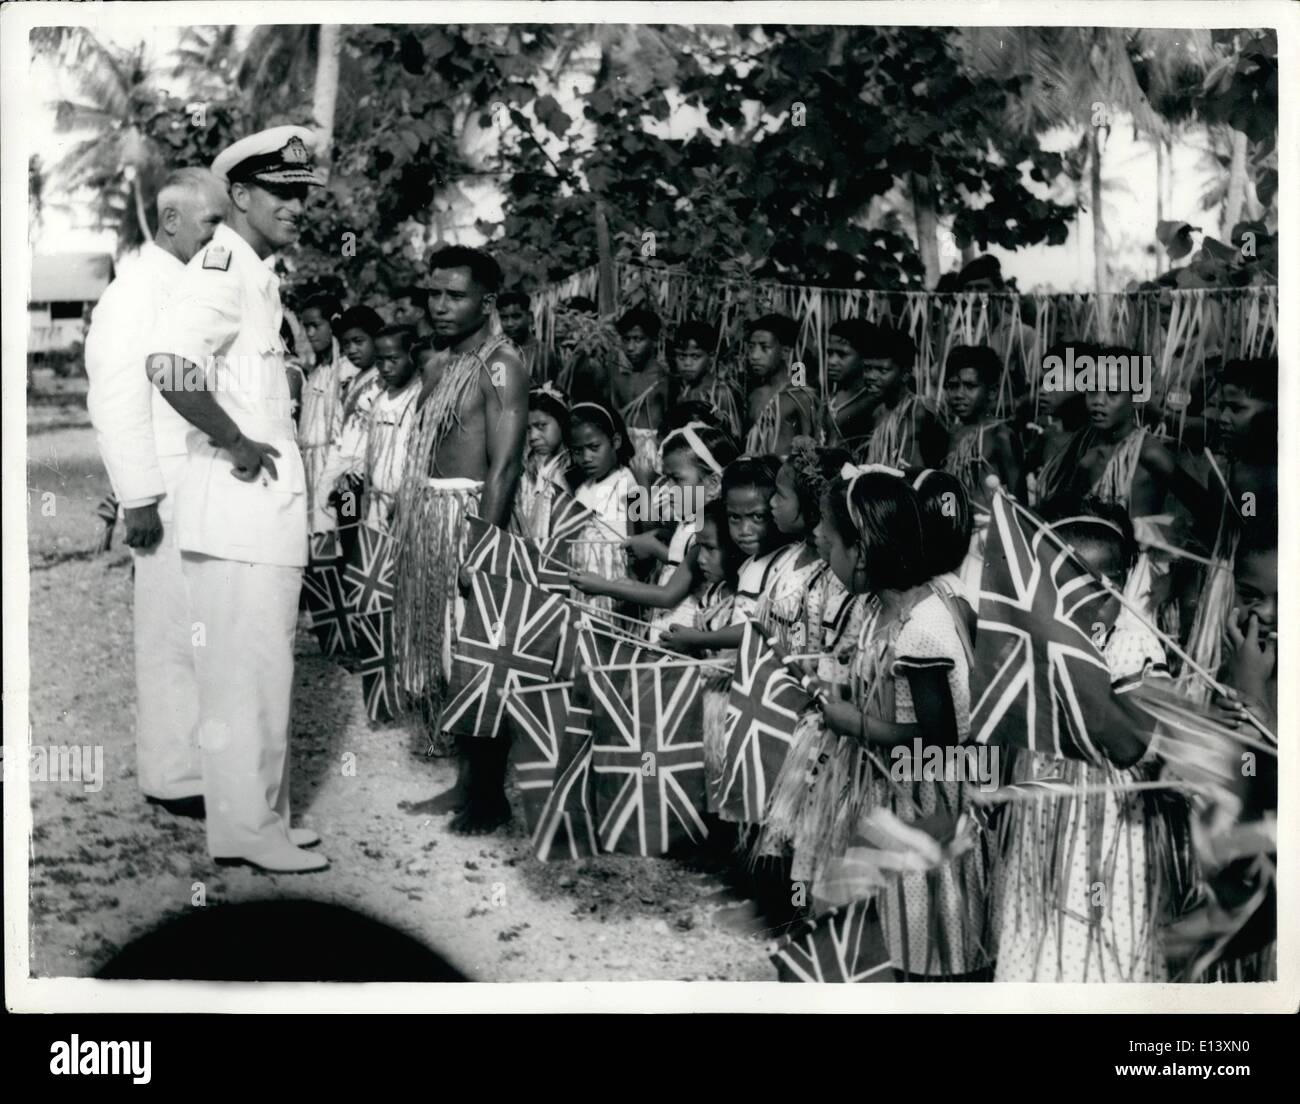 Mar. 27, 2012 - Duke of Edinburgh at Christmas Island: The Duke of Edinburgh with Mr. Percy Roberts the District Commissioner (left) talking with some of the Gilbertese schoolchildren on Christmas Island. During his visit to their village, the Duke watched demonstrations of thatching climbing and coconut husking. He was entertained by traditional songs and dances performed by the villagers. - Stock Image